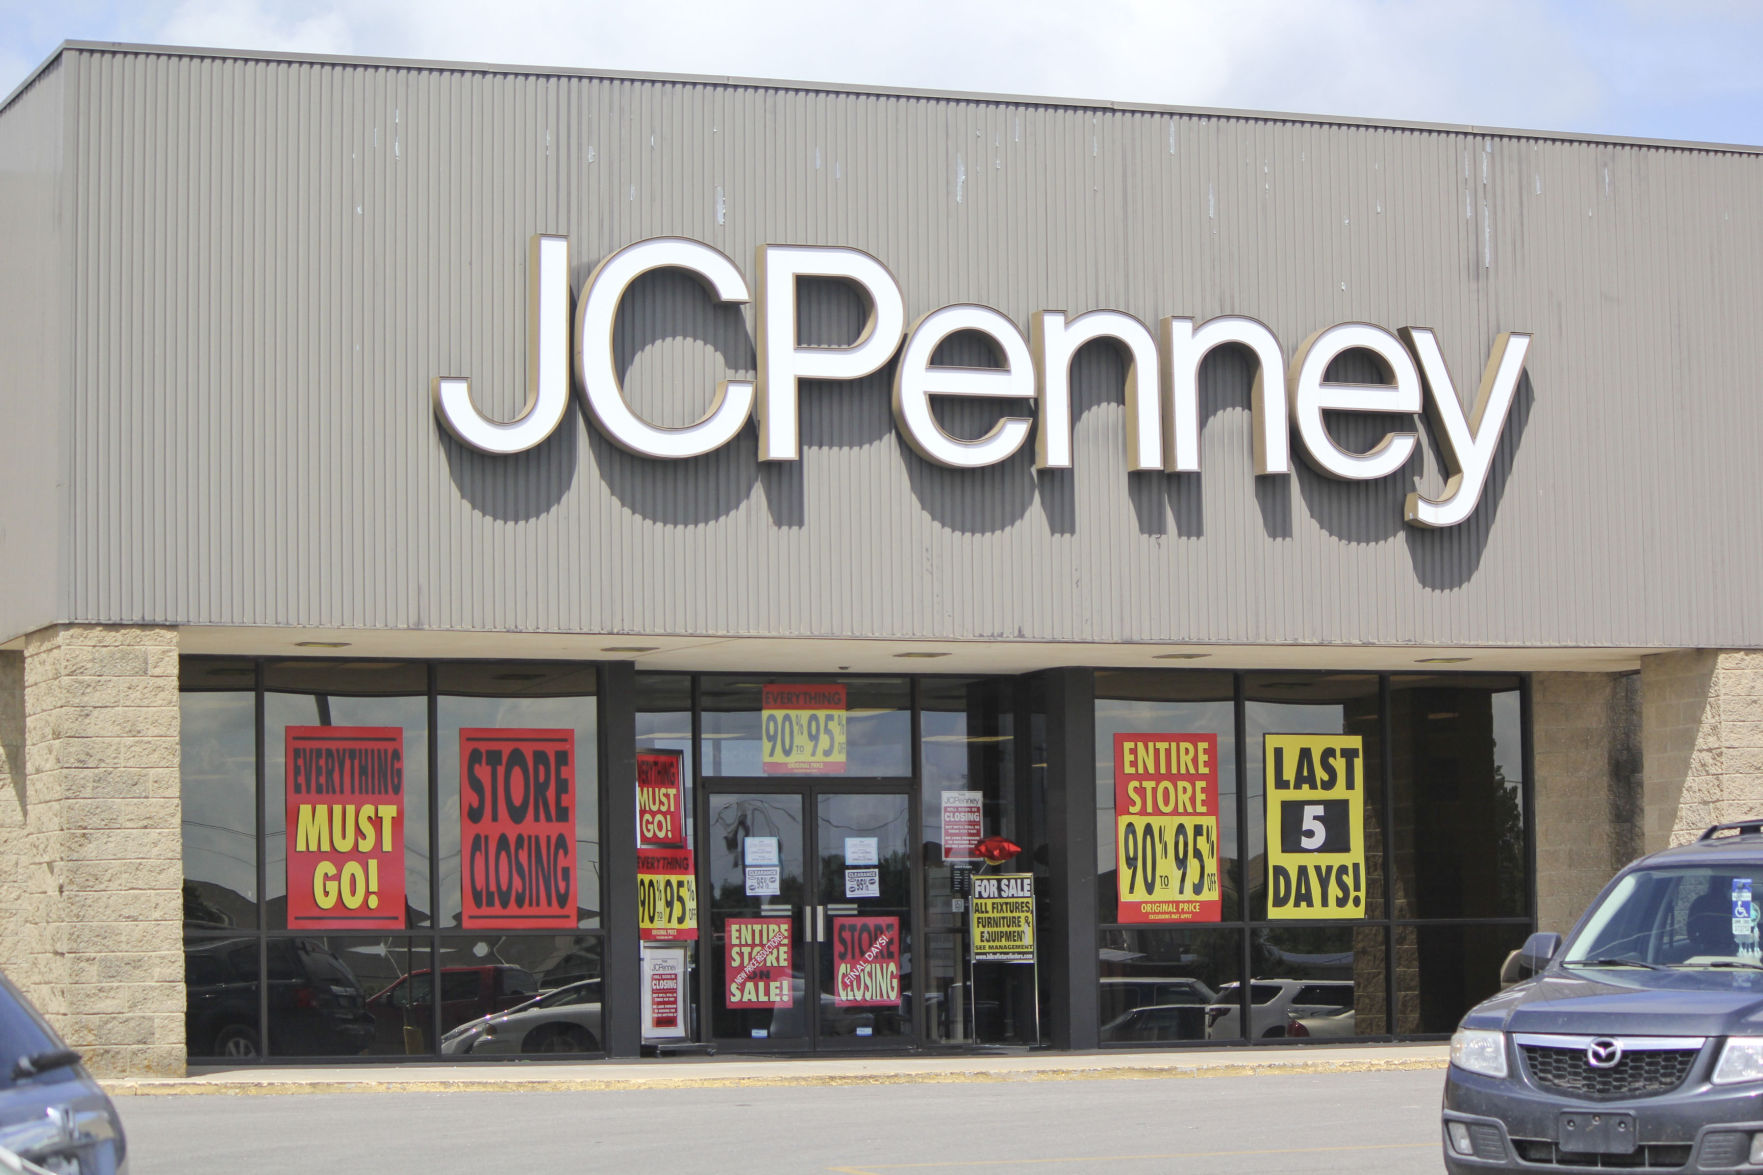 The Maryville J.C. Penney store will officially close its doors Monday night after learning in March it would be one of 138 stores nationwide that were ... & J.C. Penney set to close doors Monday | News | Maryville Daily Forum